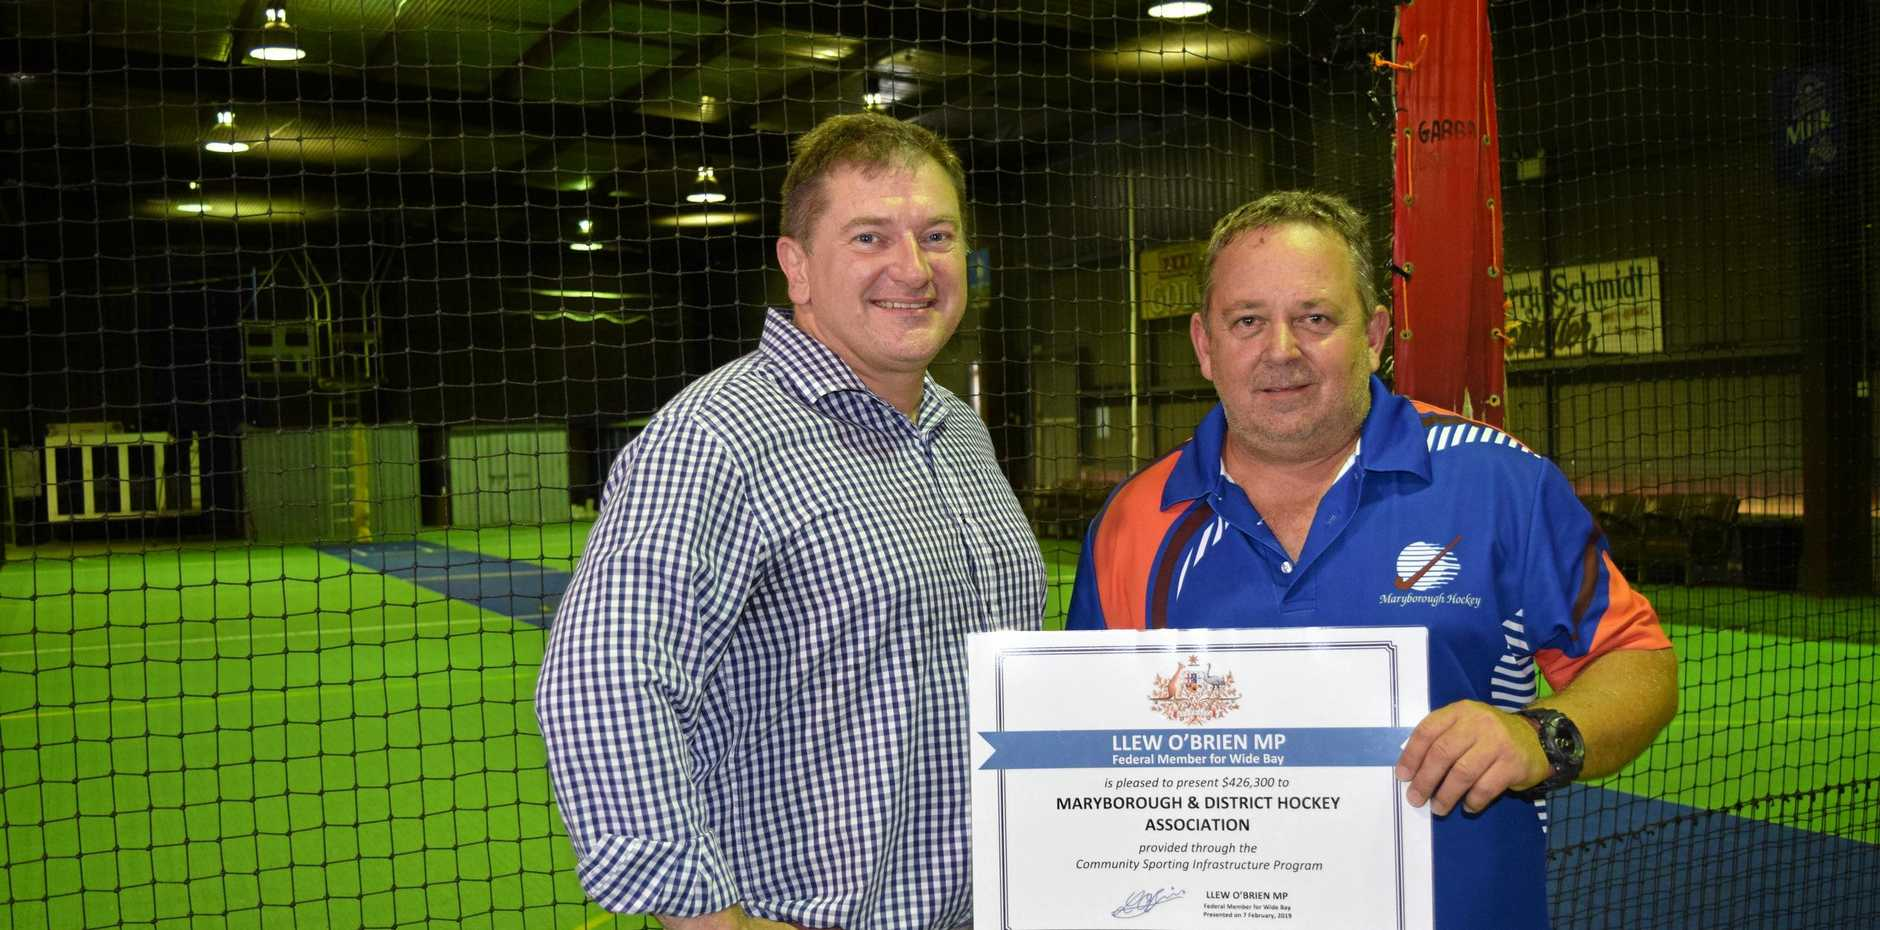 NEW FUTURE FOR HOCKEY: Wide Bay MP Llew O'Brien and Maryborough and District Hockey Association president Tony Quaill with the grant for the new indoor hockey centre, funded through the Federal Government.